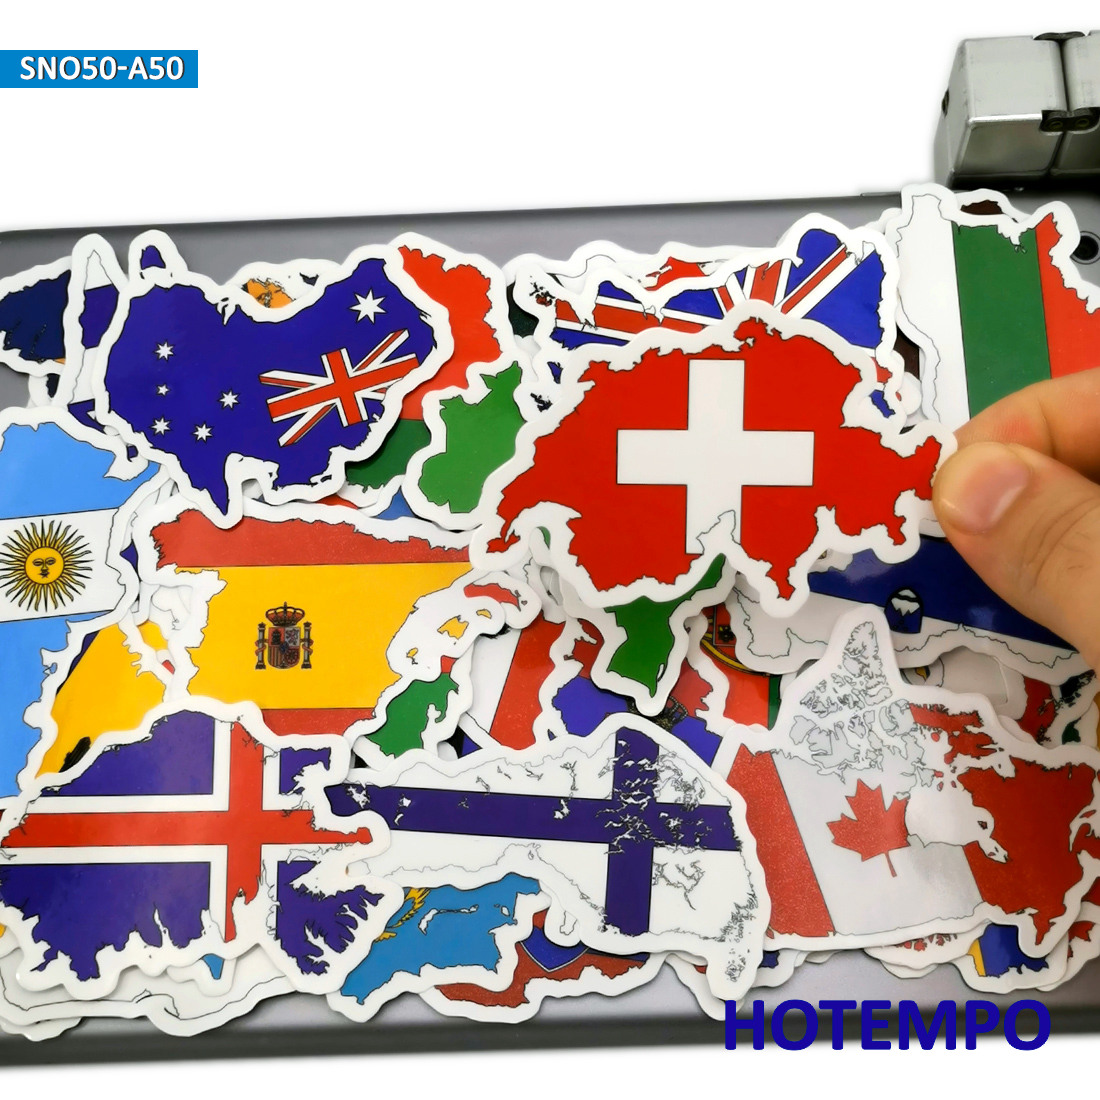 50pcs Map Travel Style National Flags Stickers Toys For Kids Mobile Phone Laptop Luggage Case Skateboard Bike Car Decal Stickers